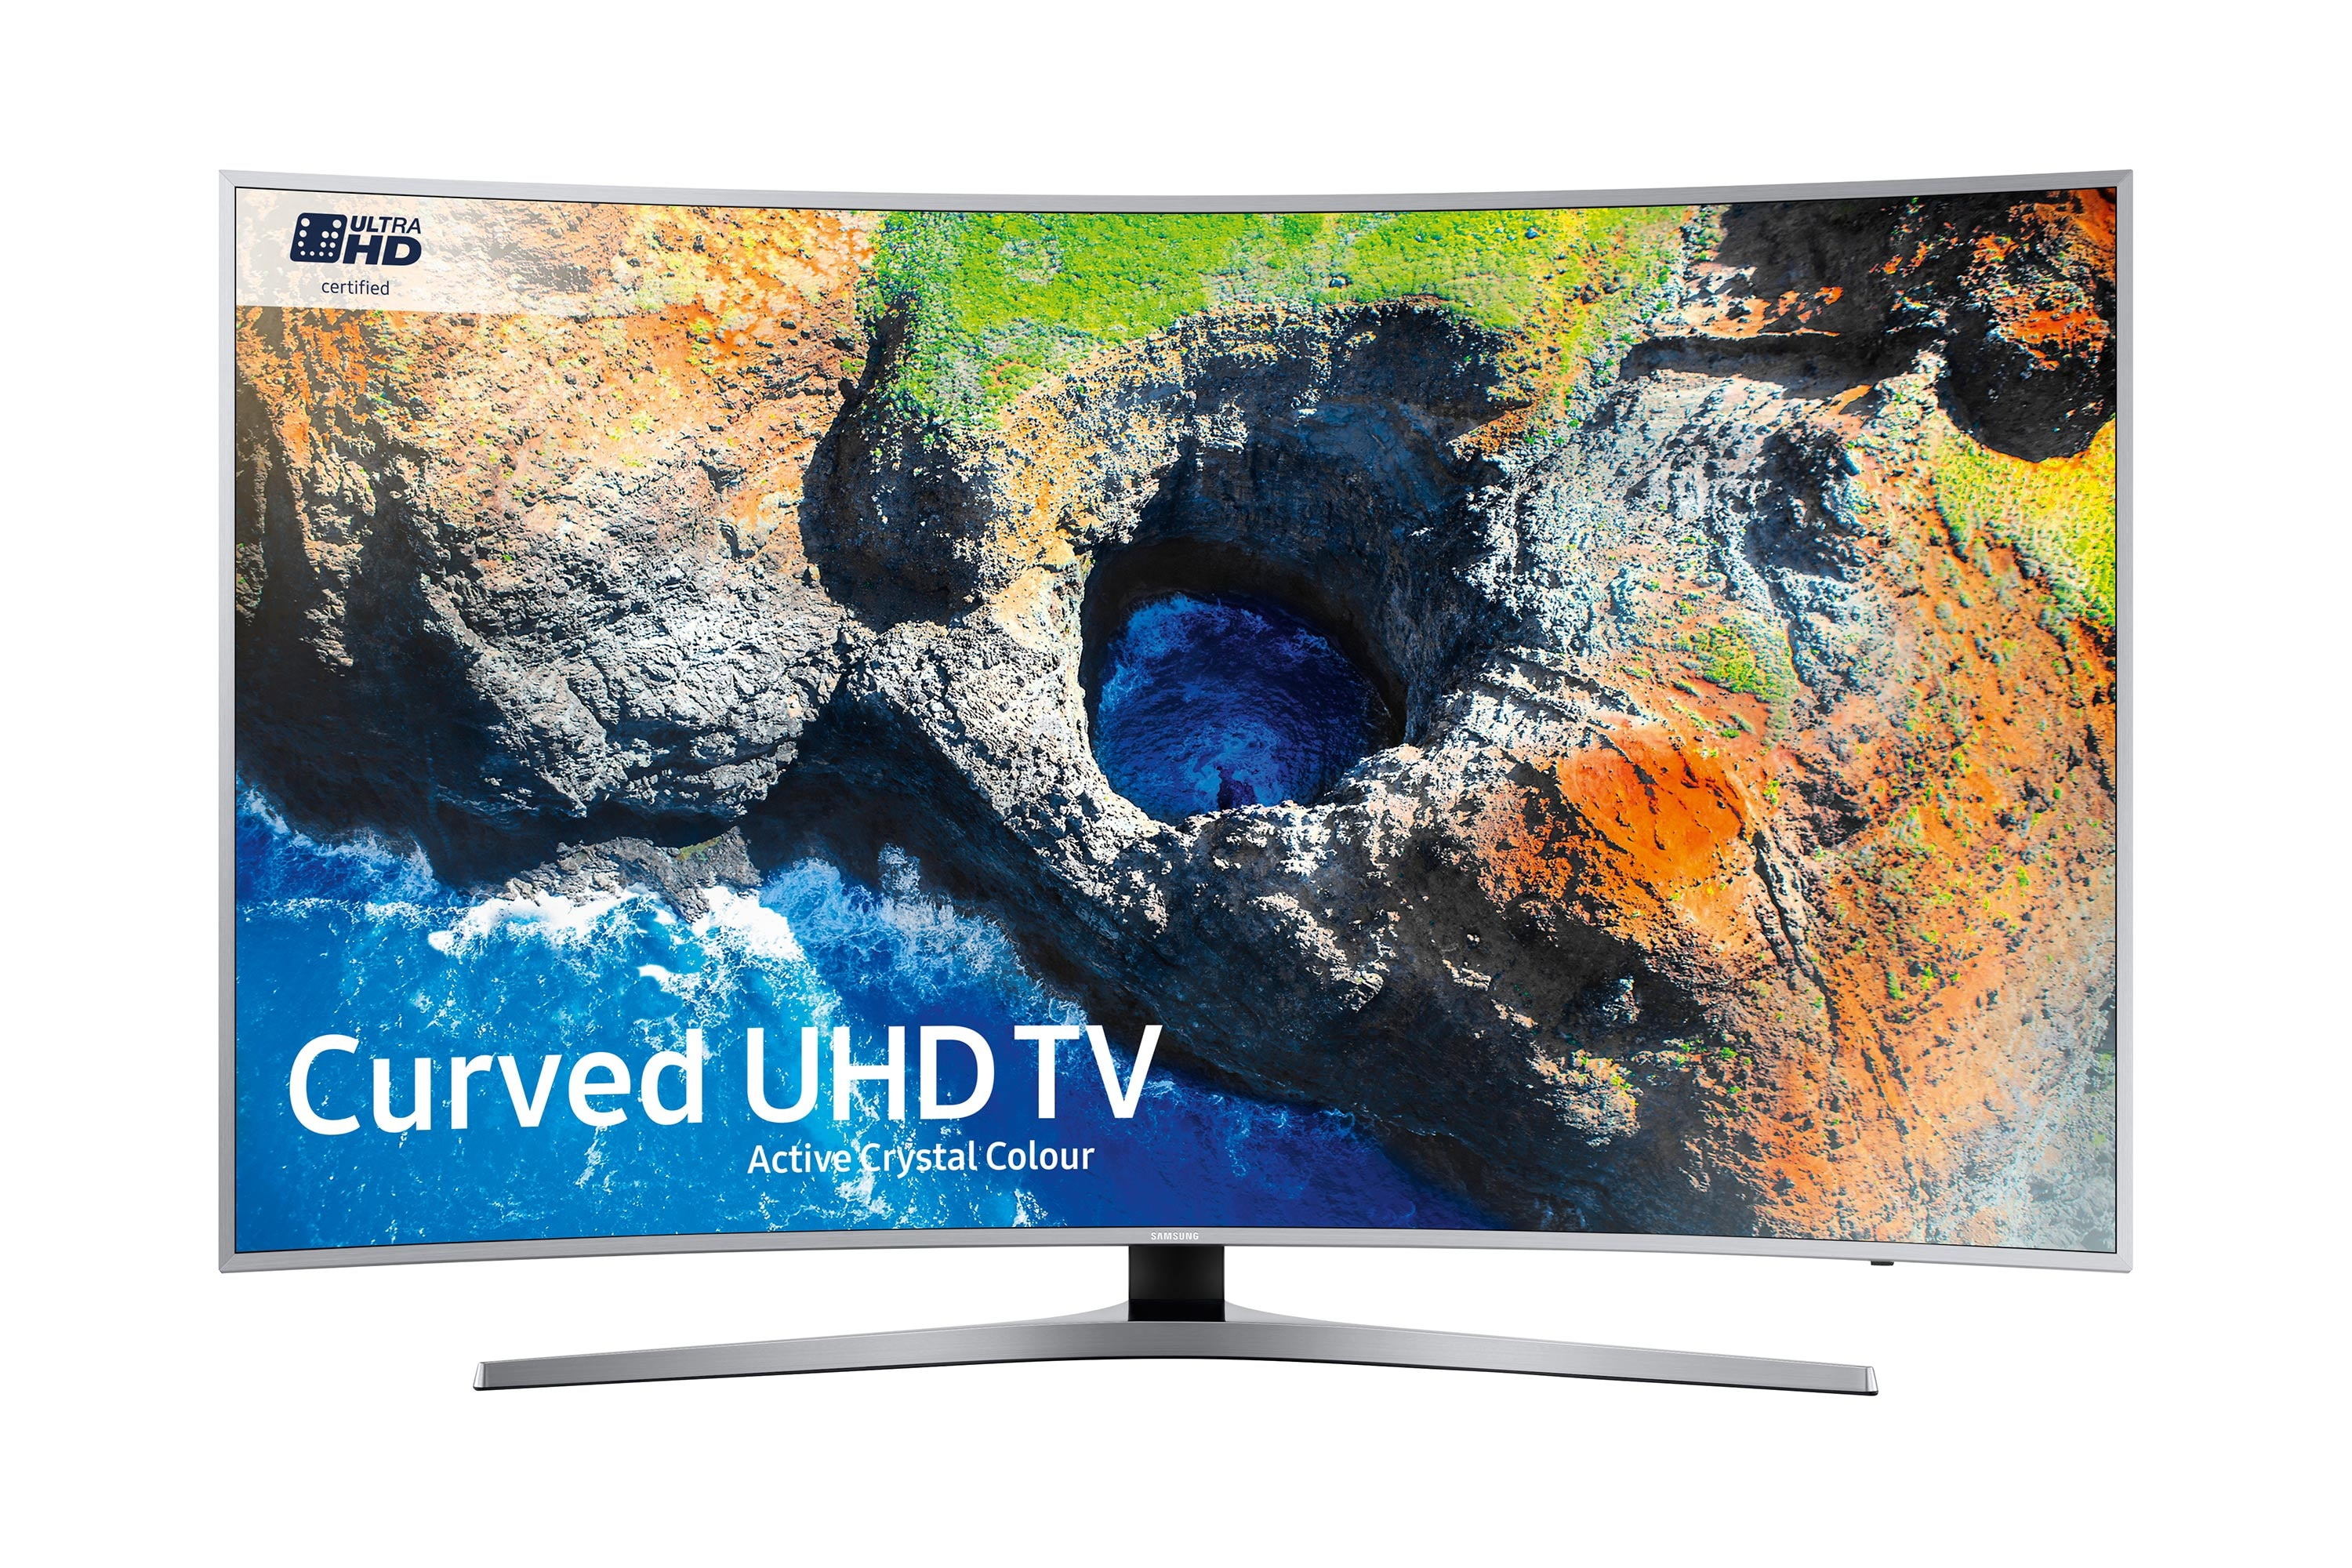 65'' MU6500 Curved Active Crystal Colour Ultra HD HDR Smart TV